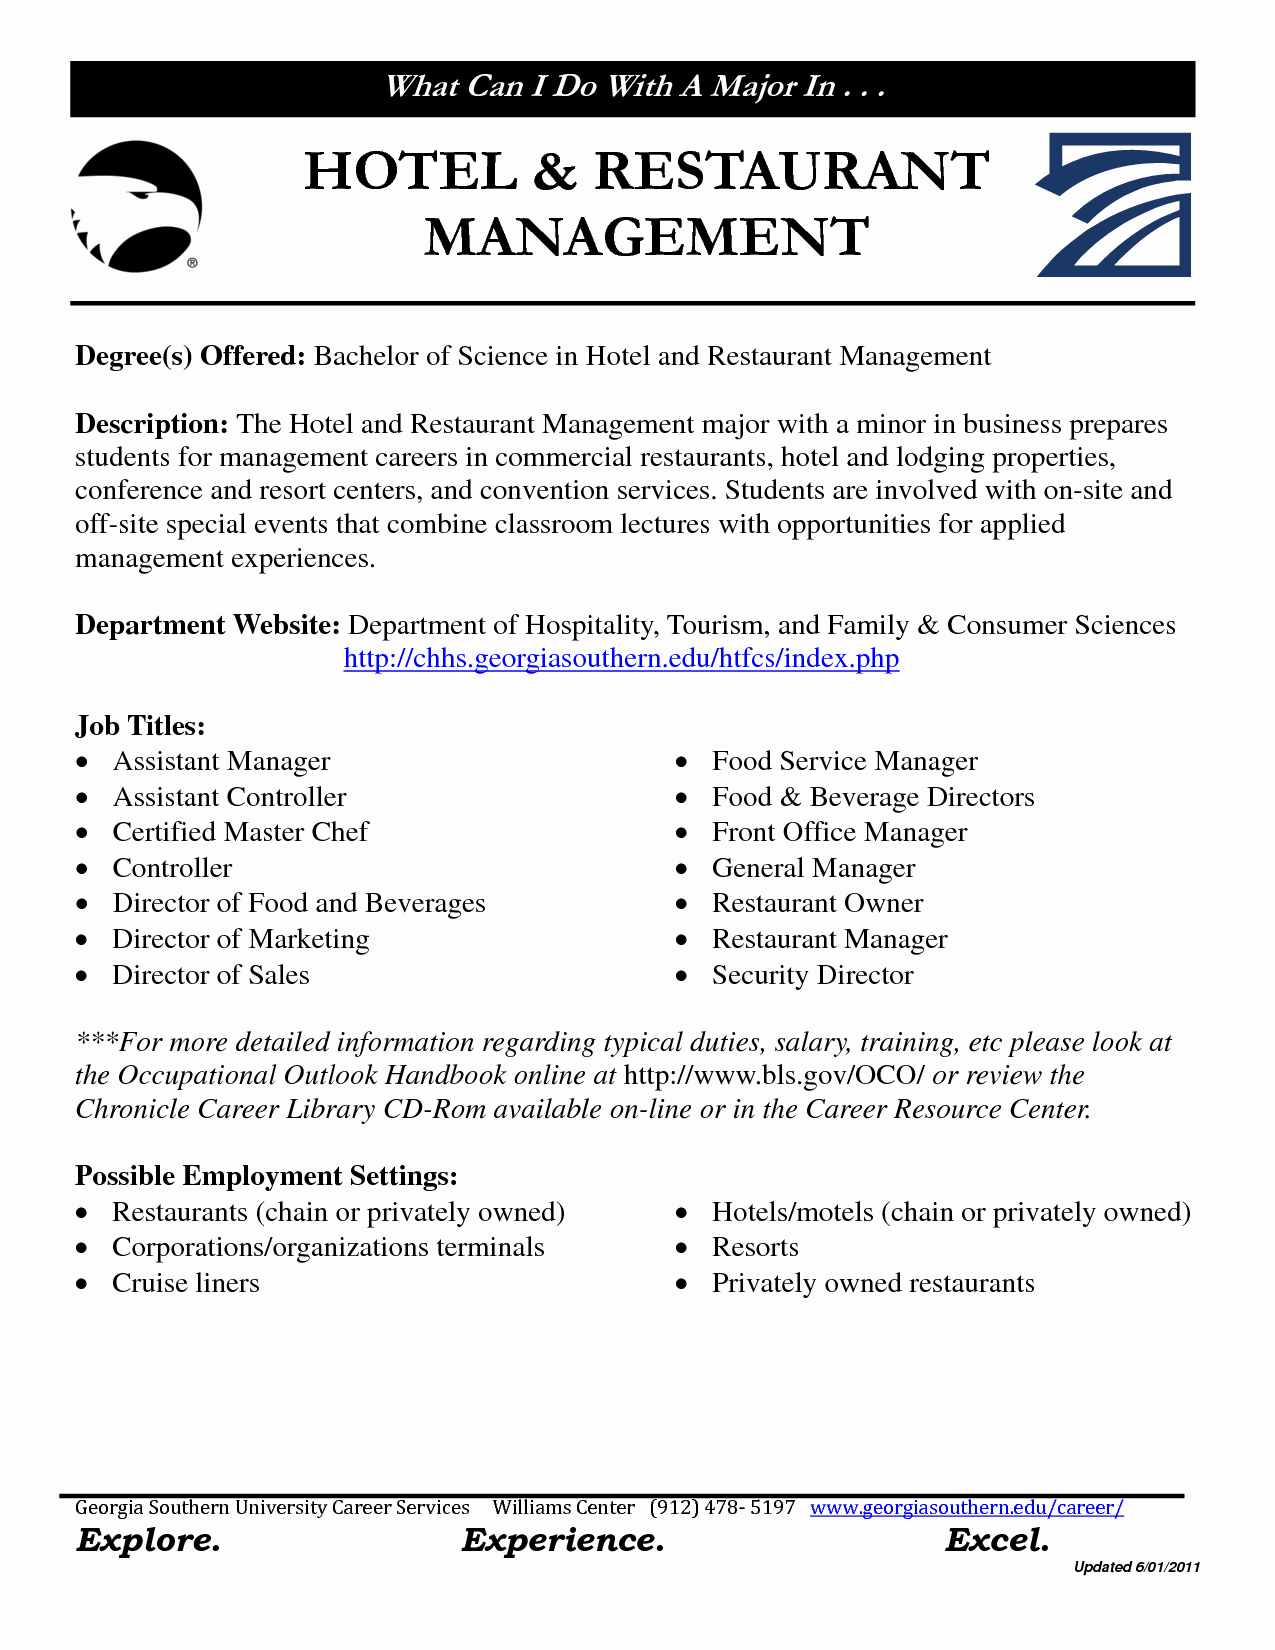 Transform Resume Restaurant Manager Sample with Additional